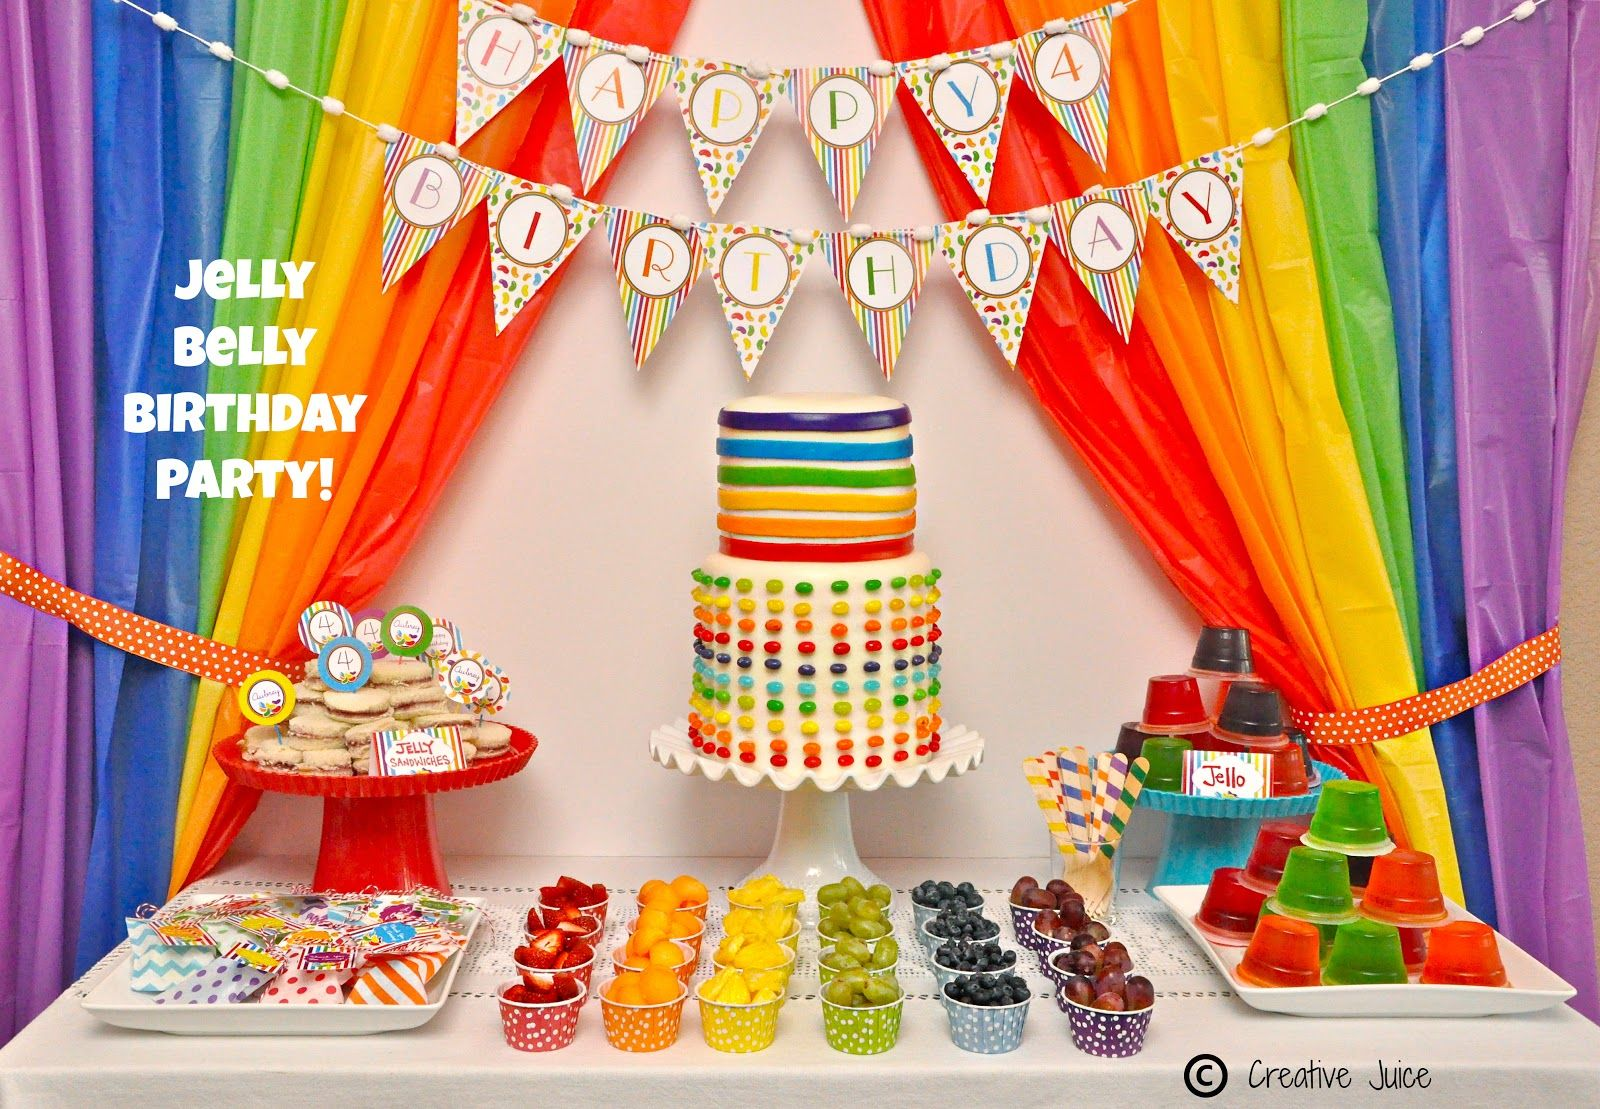 Rainbow Jelly Bean Birthday Party Ideas Decoracion Arcoiris